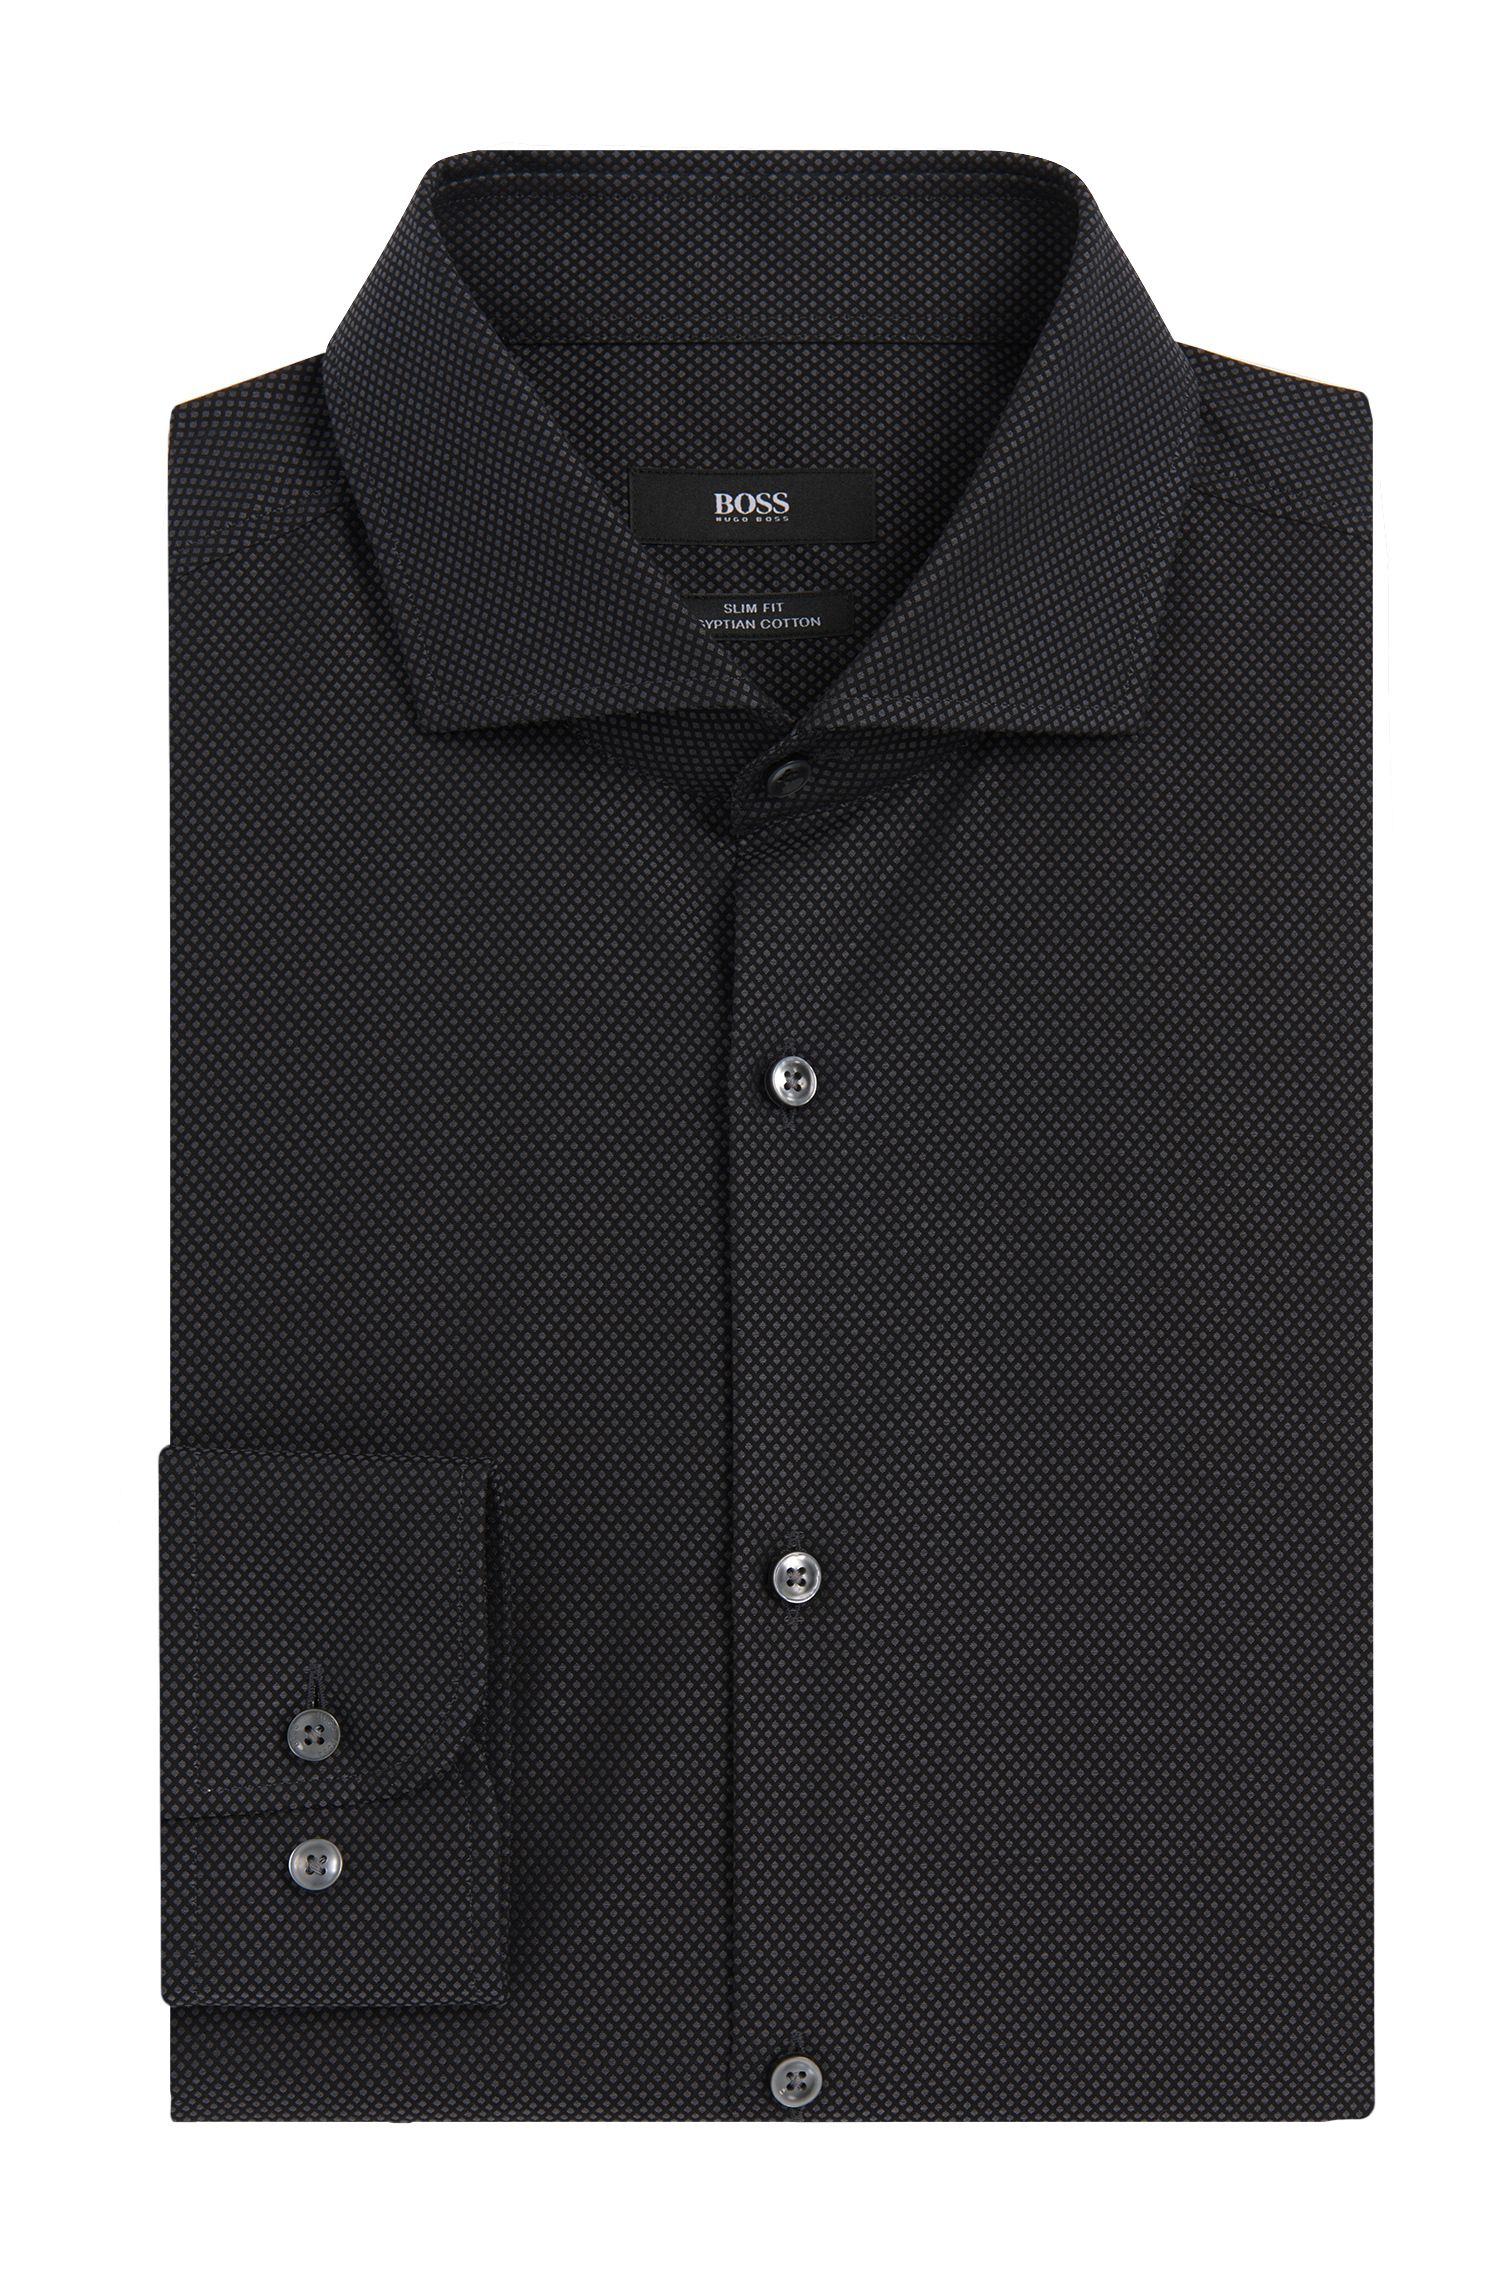 'Jerrin' | Slim Fit, Egyptian Cotton Dress Shirt